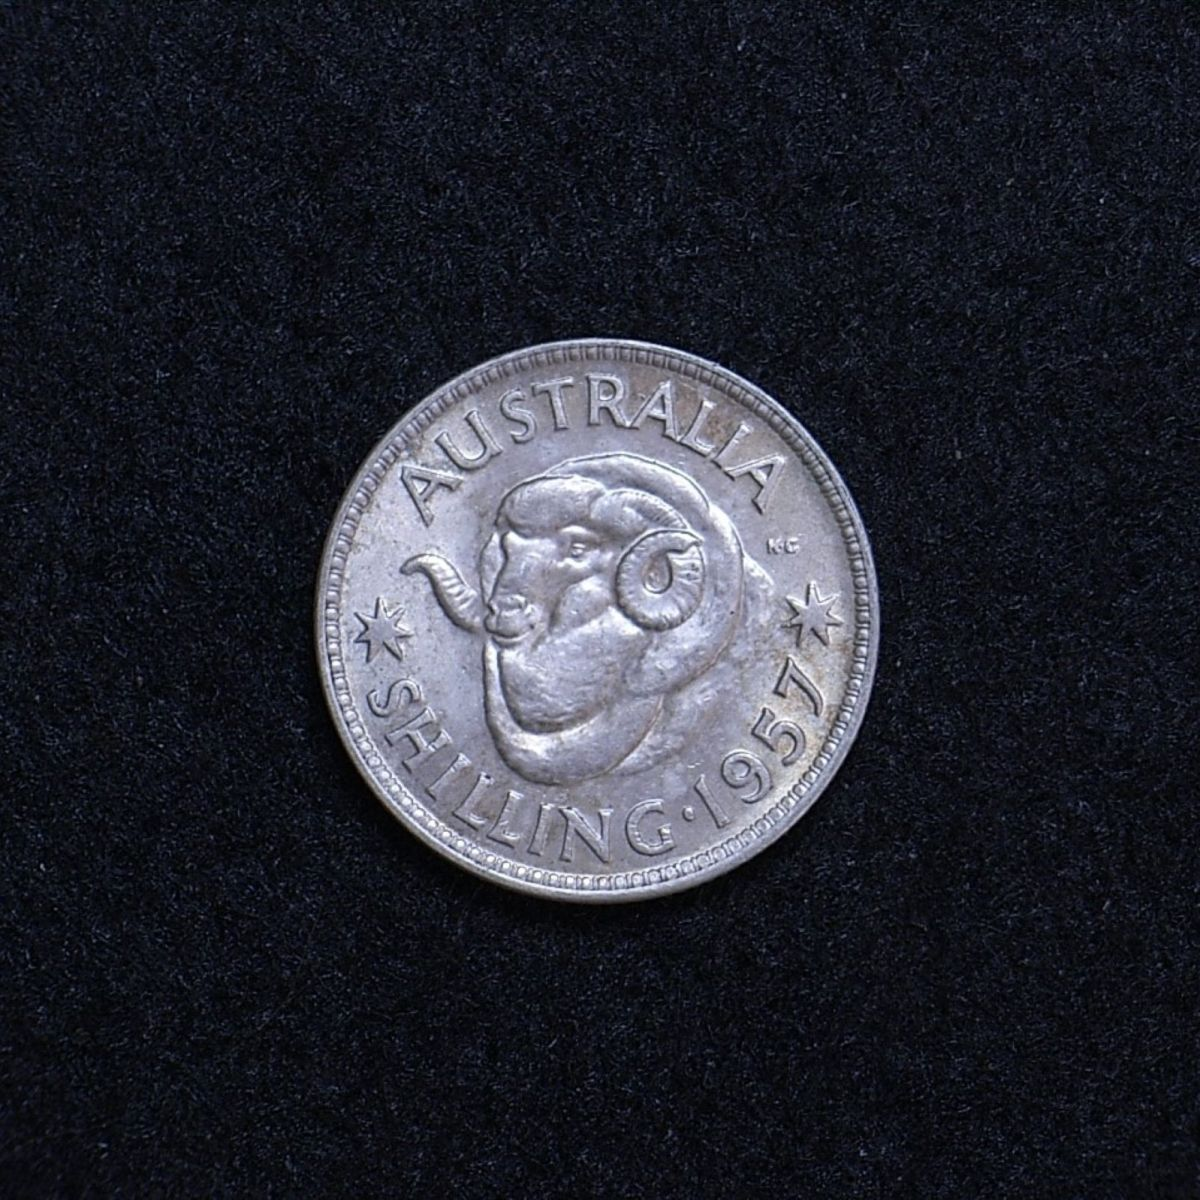 Aus shilling 1957 reverse showing overall appearance